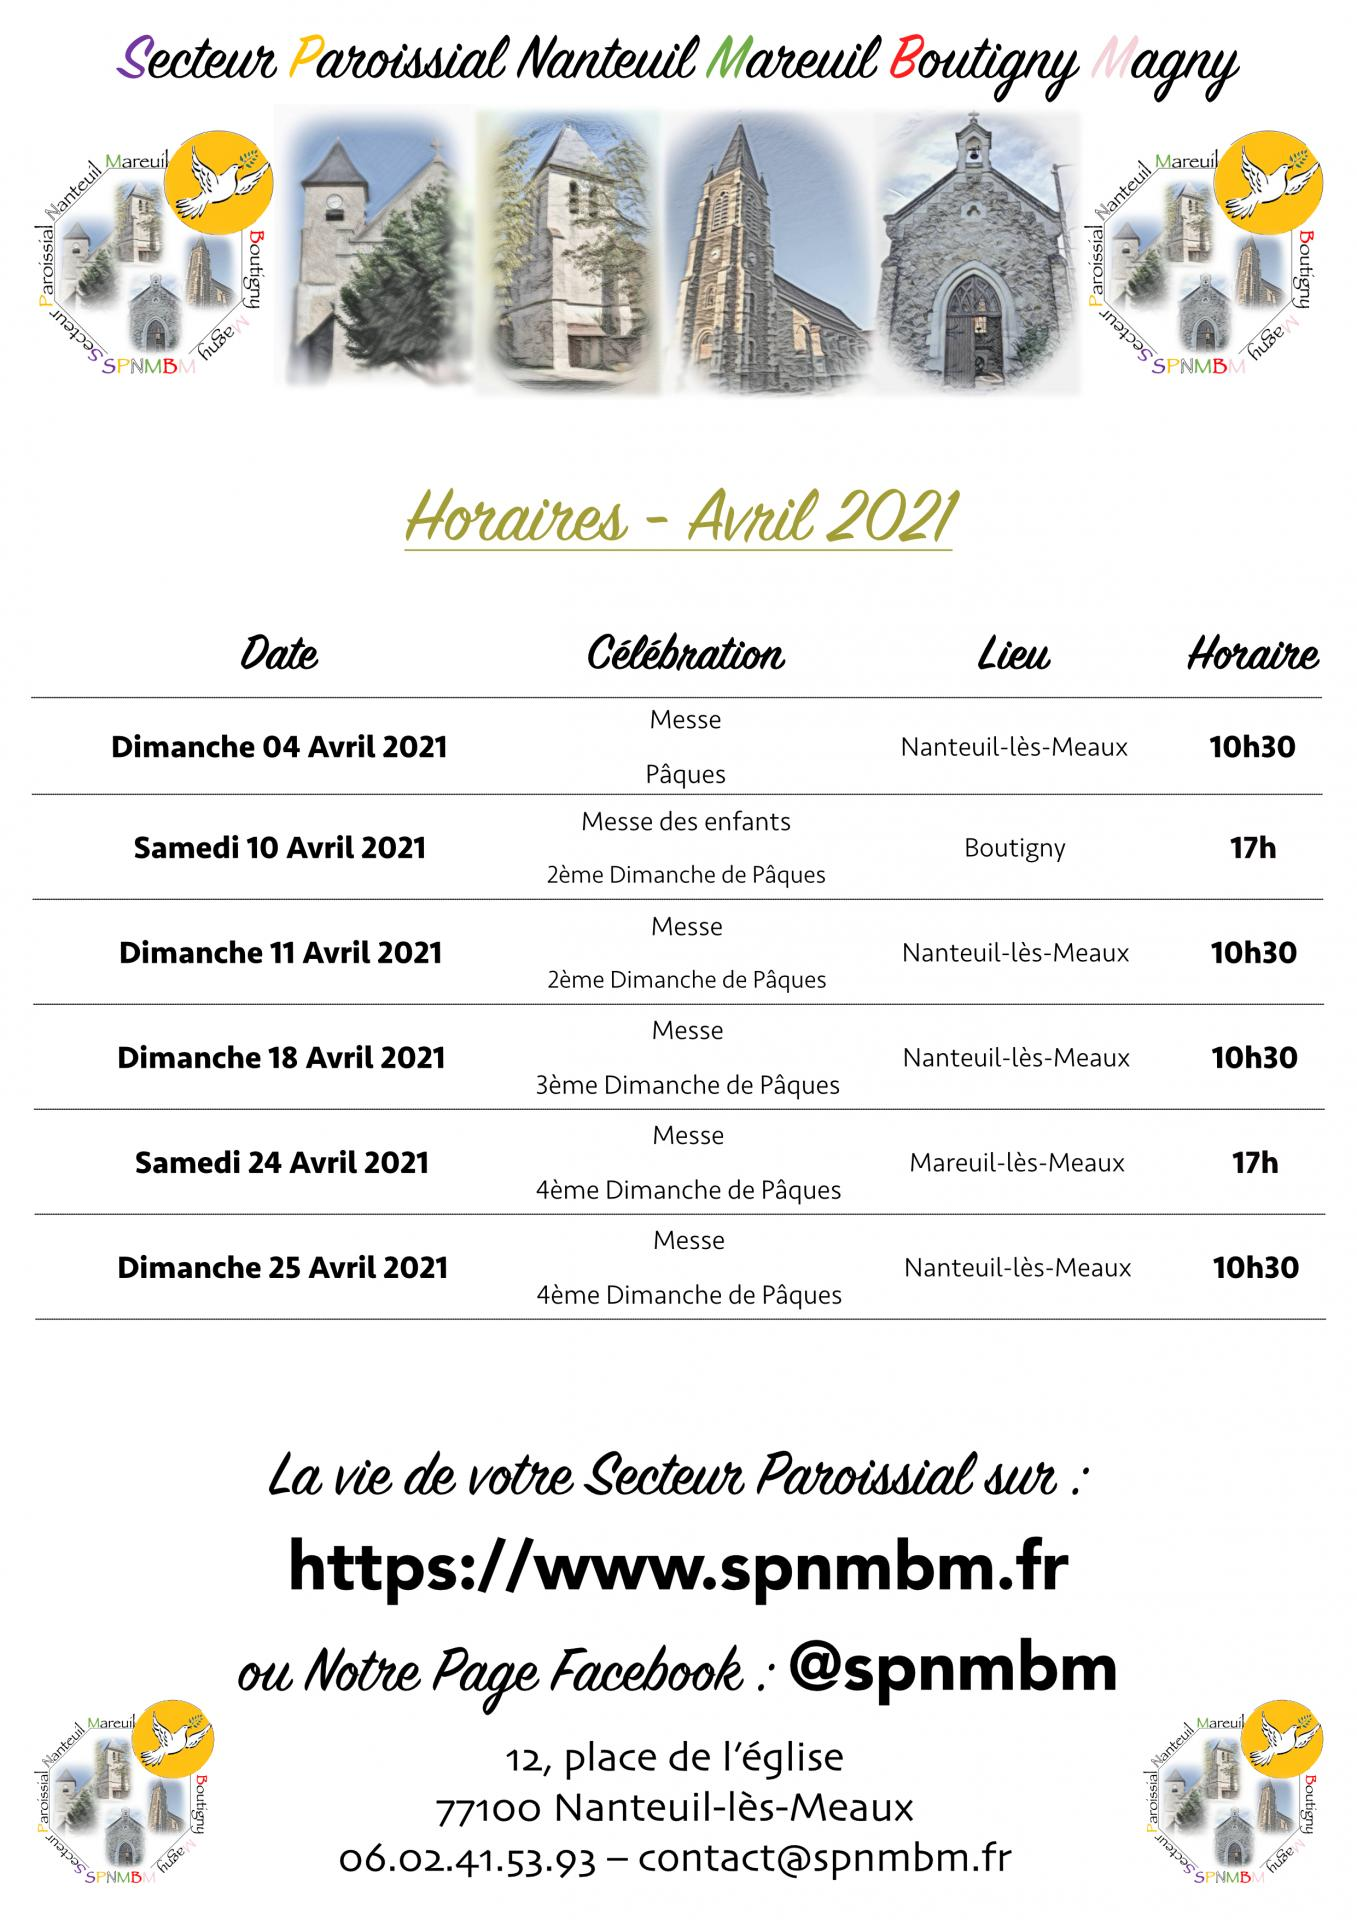 Horaires avril 2021